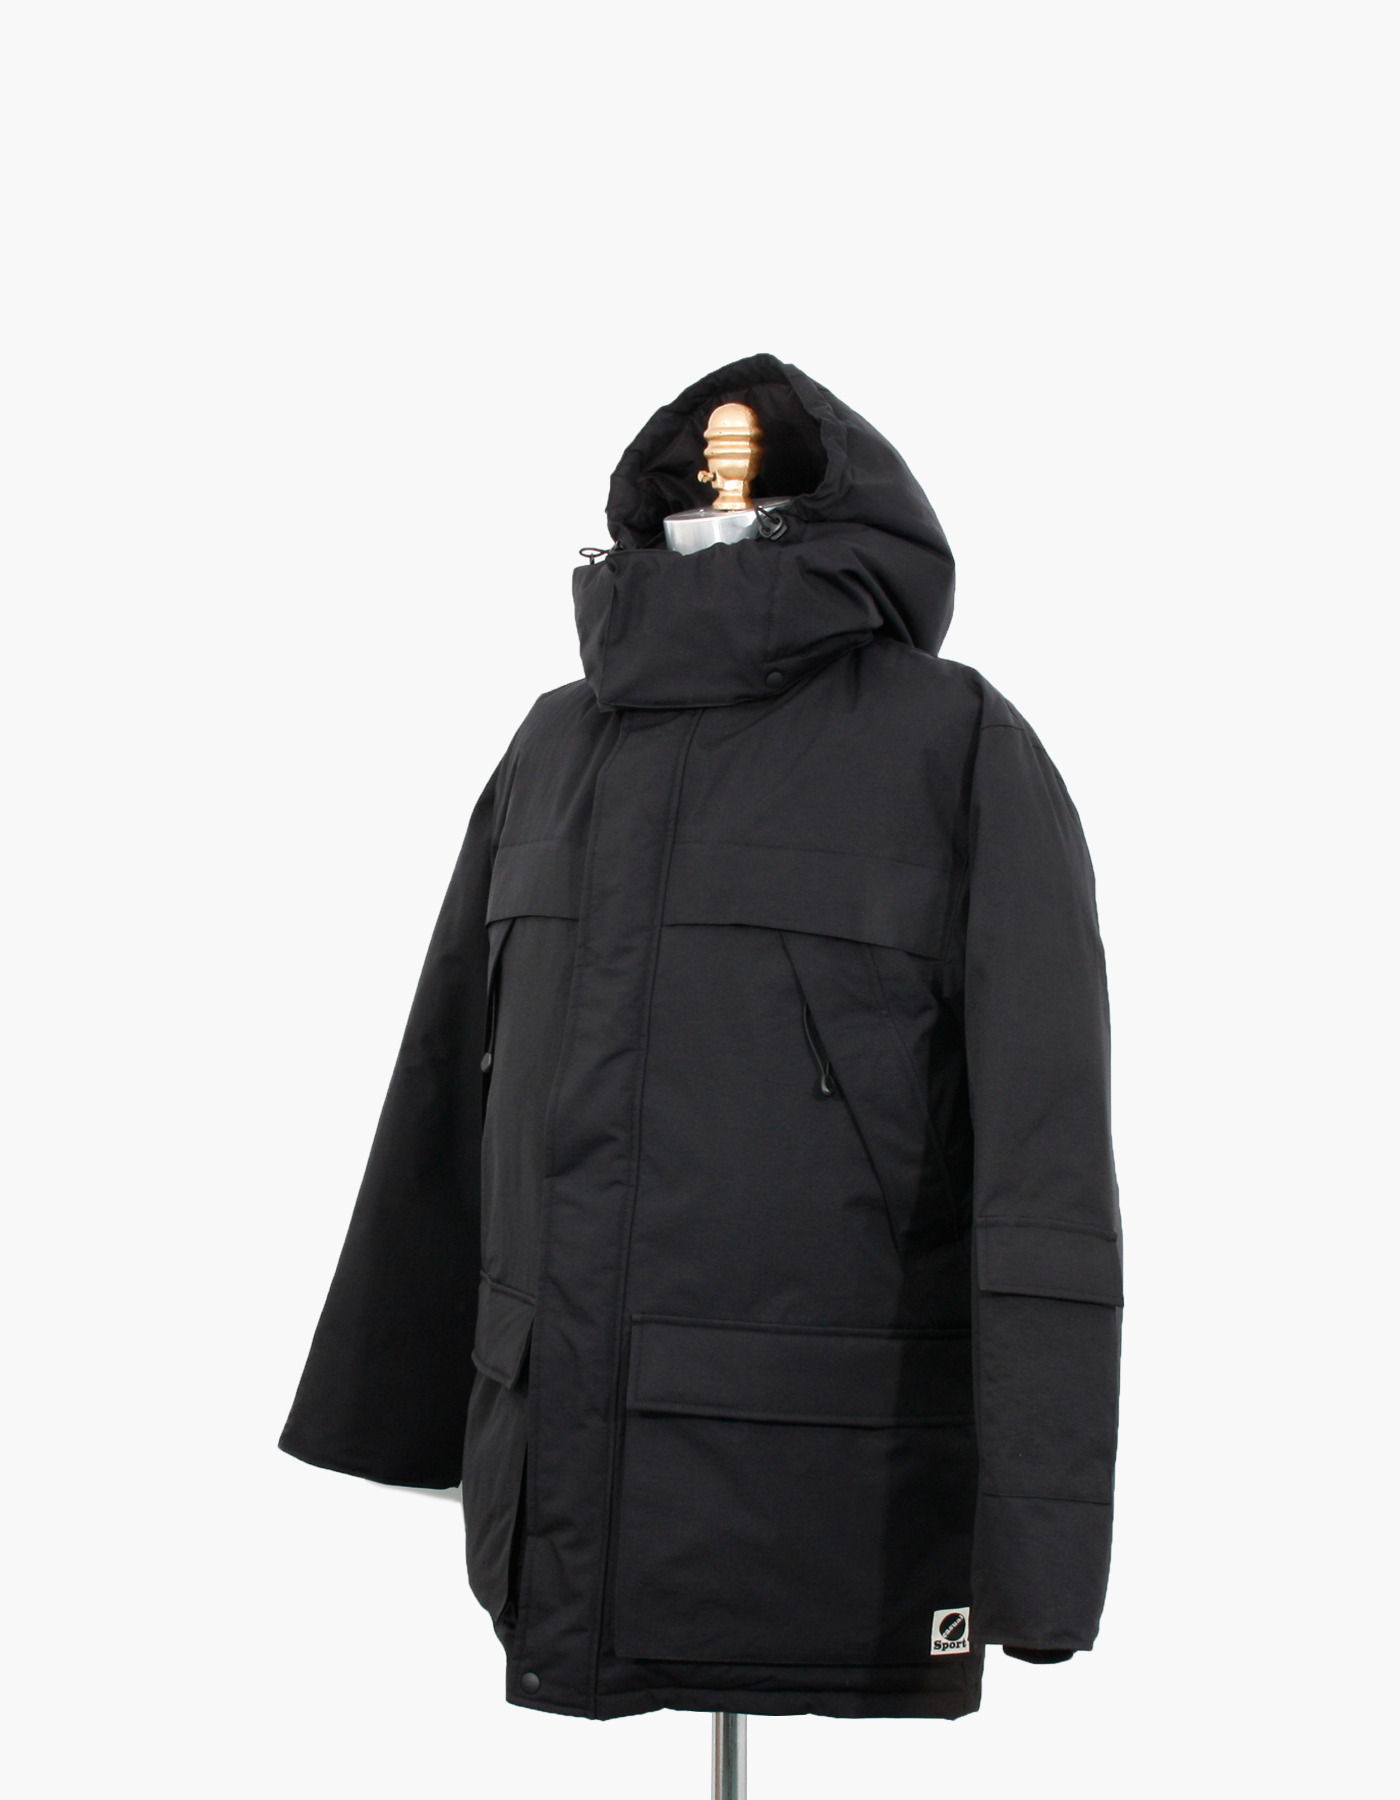 MOUNTAIN GOOSE DOWN PARKA / BLACK